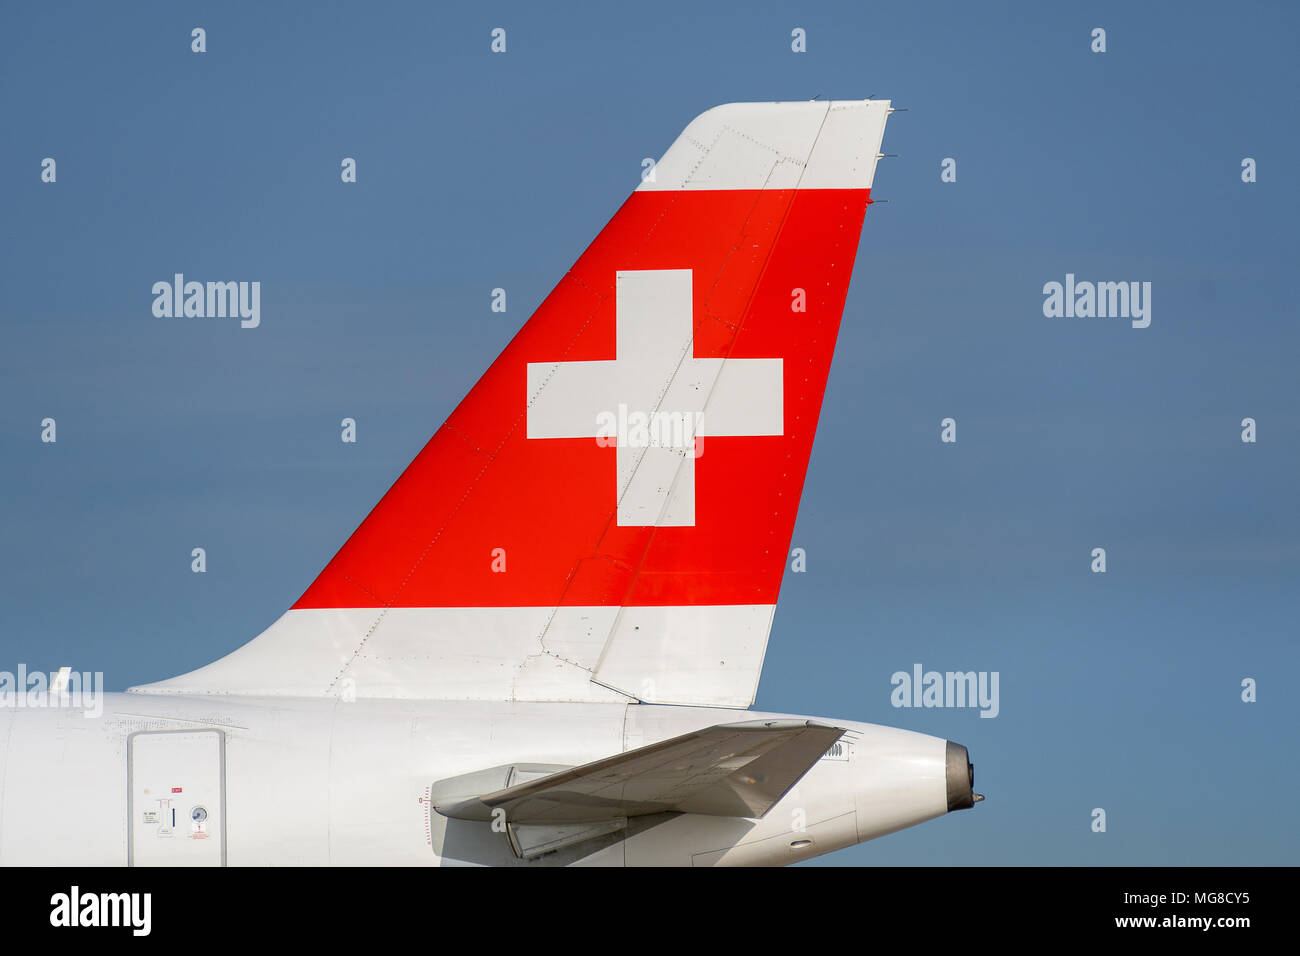 MANCHESTER, UNITED KINGDOM - APRIL 21st, 2018: Swiss Airllines livery Tail at Manchester Airport - Stock Image